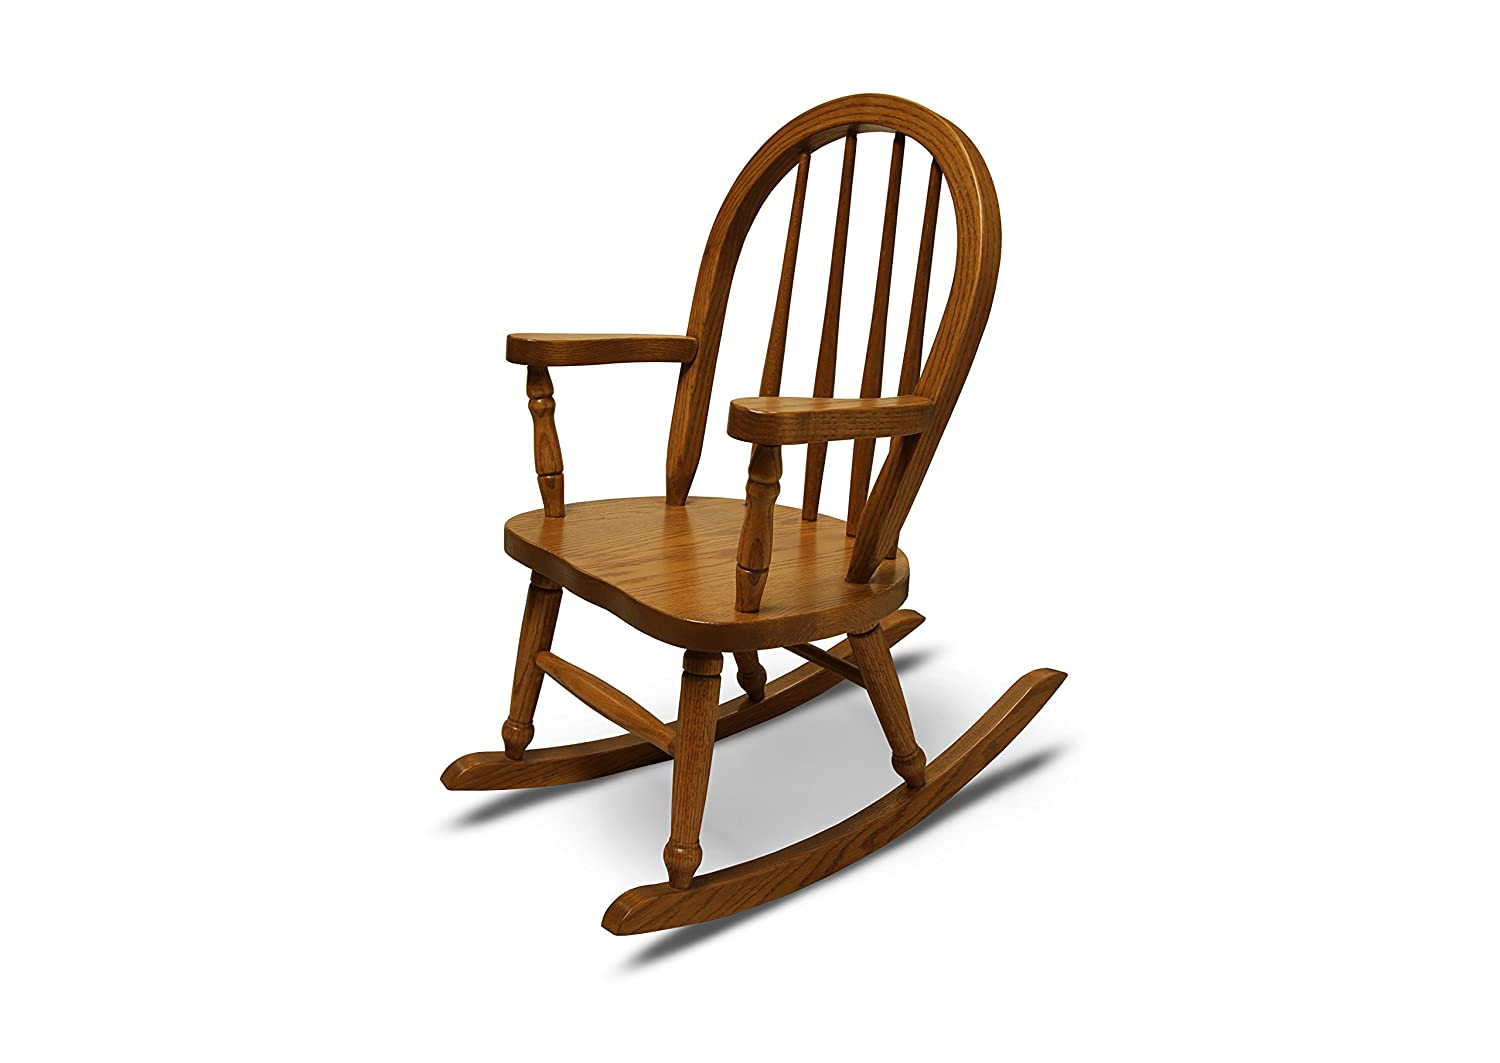 Weaver Craft Child's Rocking Chair Amish Made (Medium Oak) - Fully Assembled